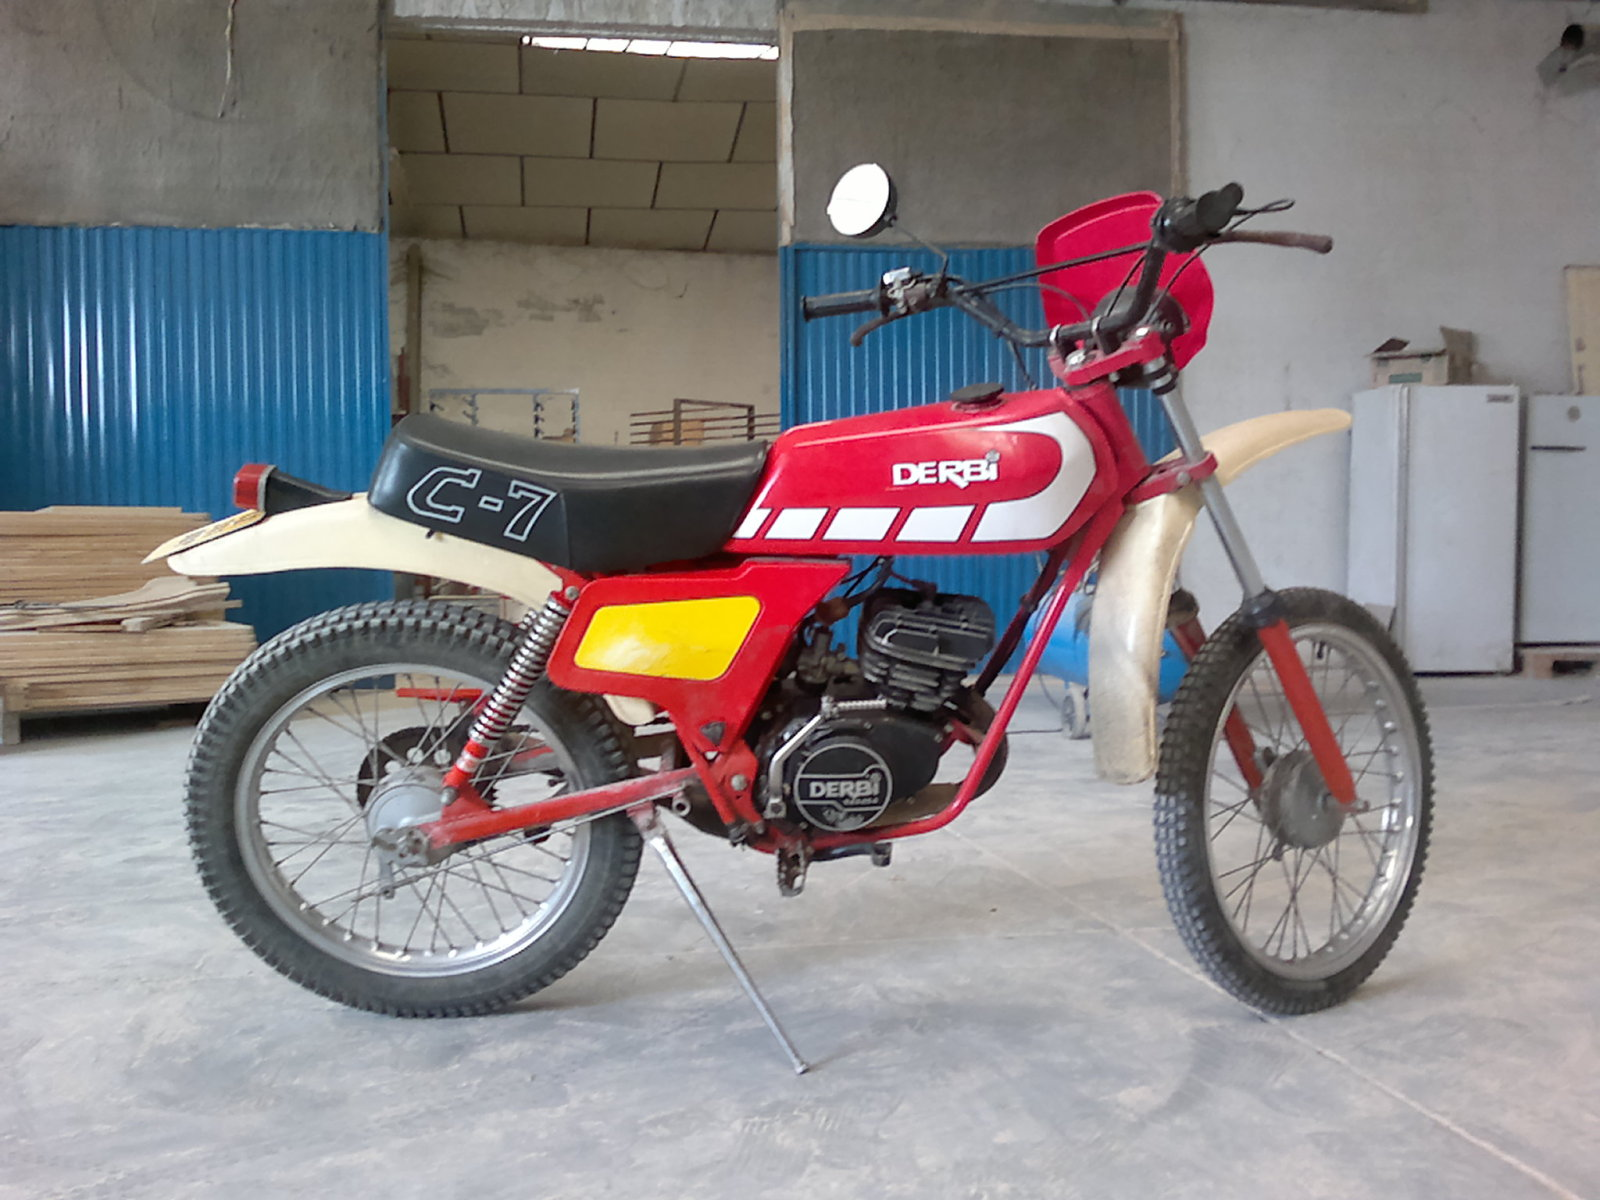 Mi ultima adquisicion: Derbi C7 Descw2